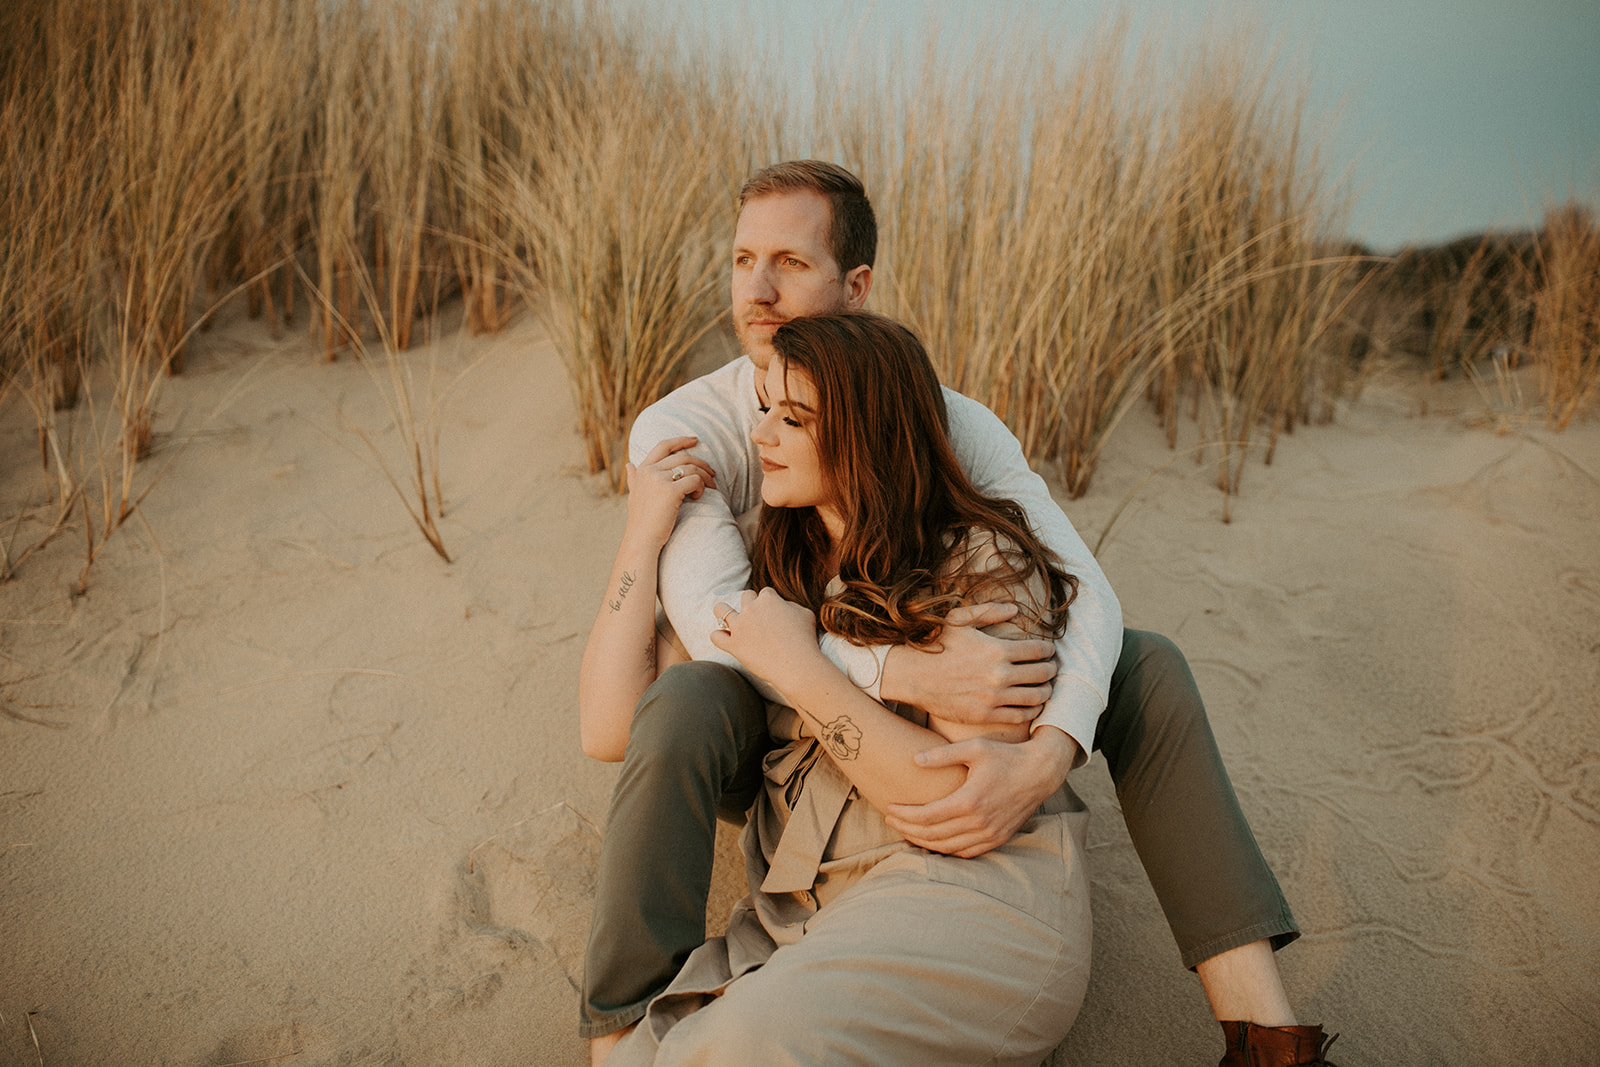 Emily_and_Jeff_Oregon_Coast_Engagement_Dawn_Charles_Photographer-278.jpg